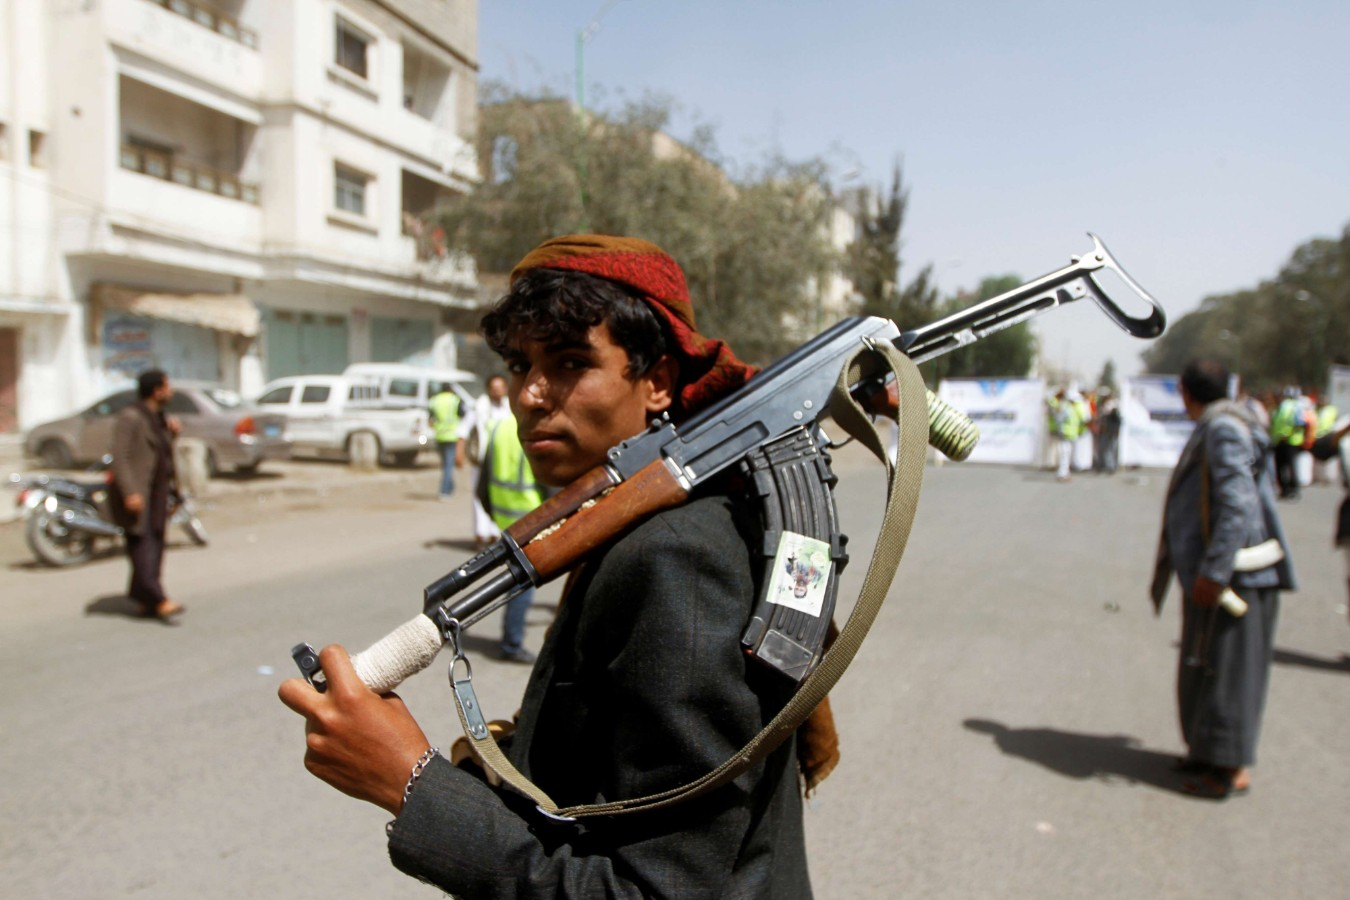 A Houthi supporter looks on as he carries a weapon during a gathering in Sana'a, Yemen April 2. (Reuters)